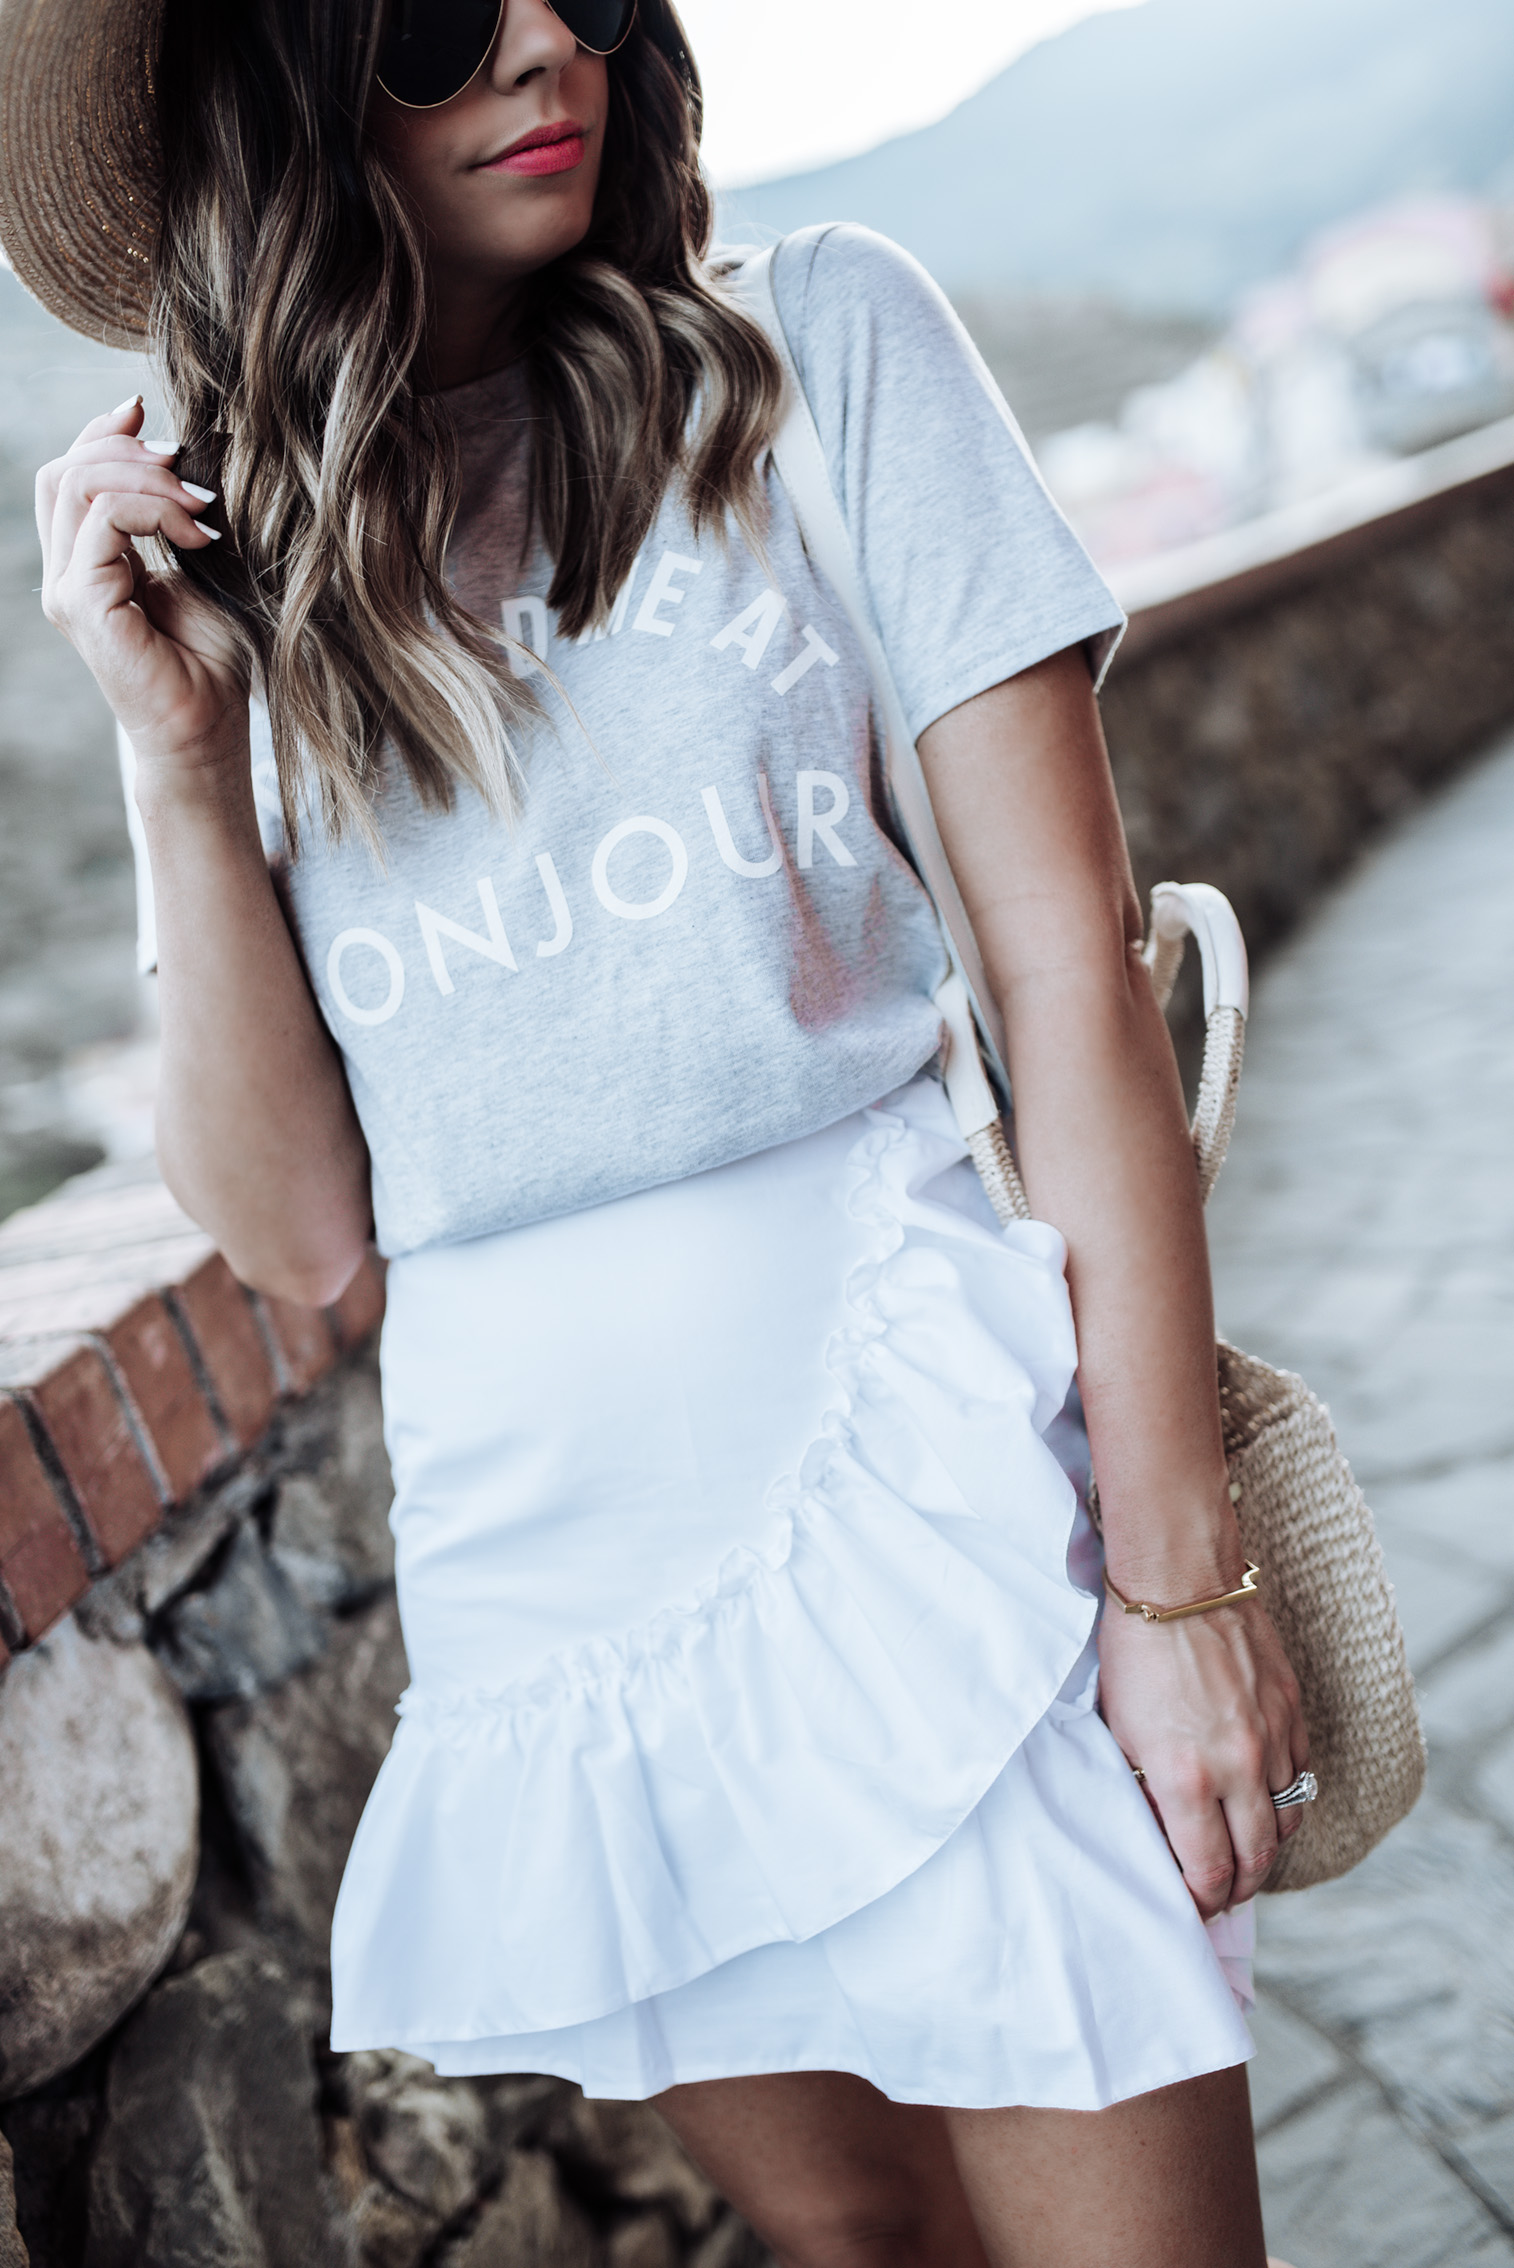 Tiffany Jais Houston fashion and lifestyle blogger | Graphic Tee (runs small size up)  | White ruffle hem skirt | Claire V. Alice Tote | Ked's | Brixton Willow hat